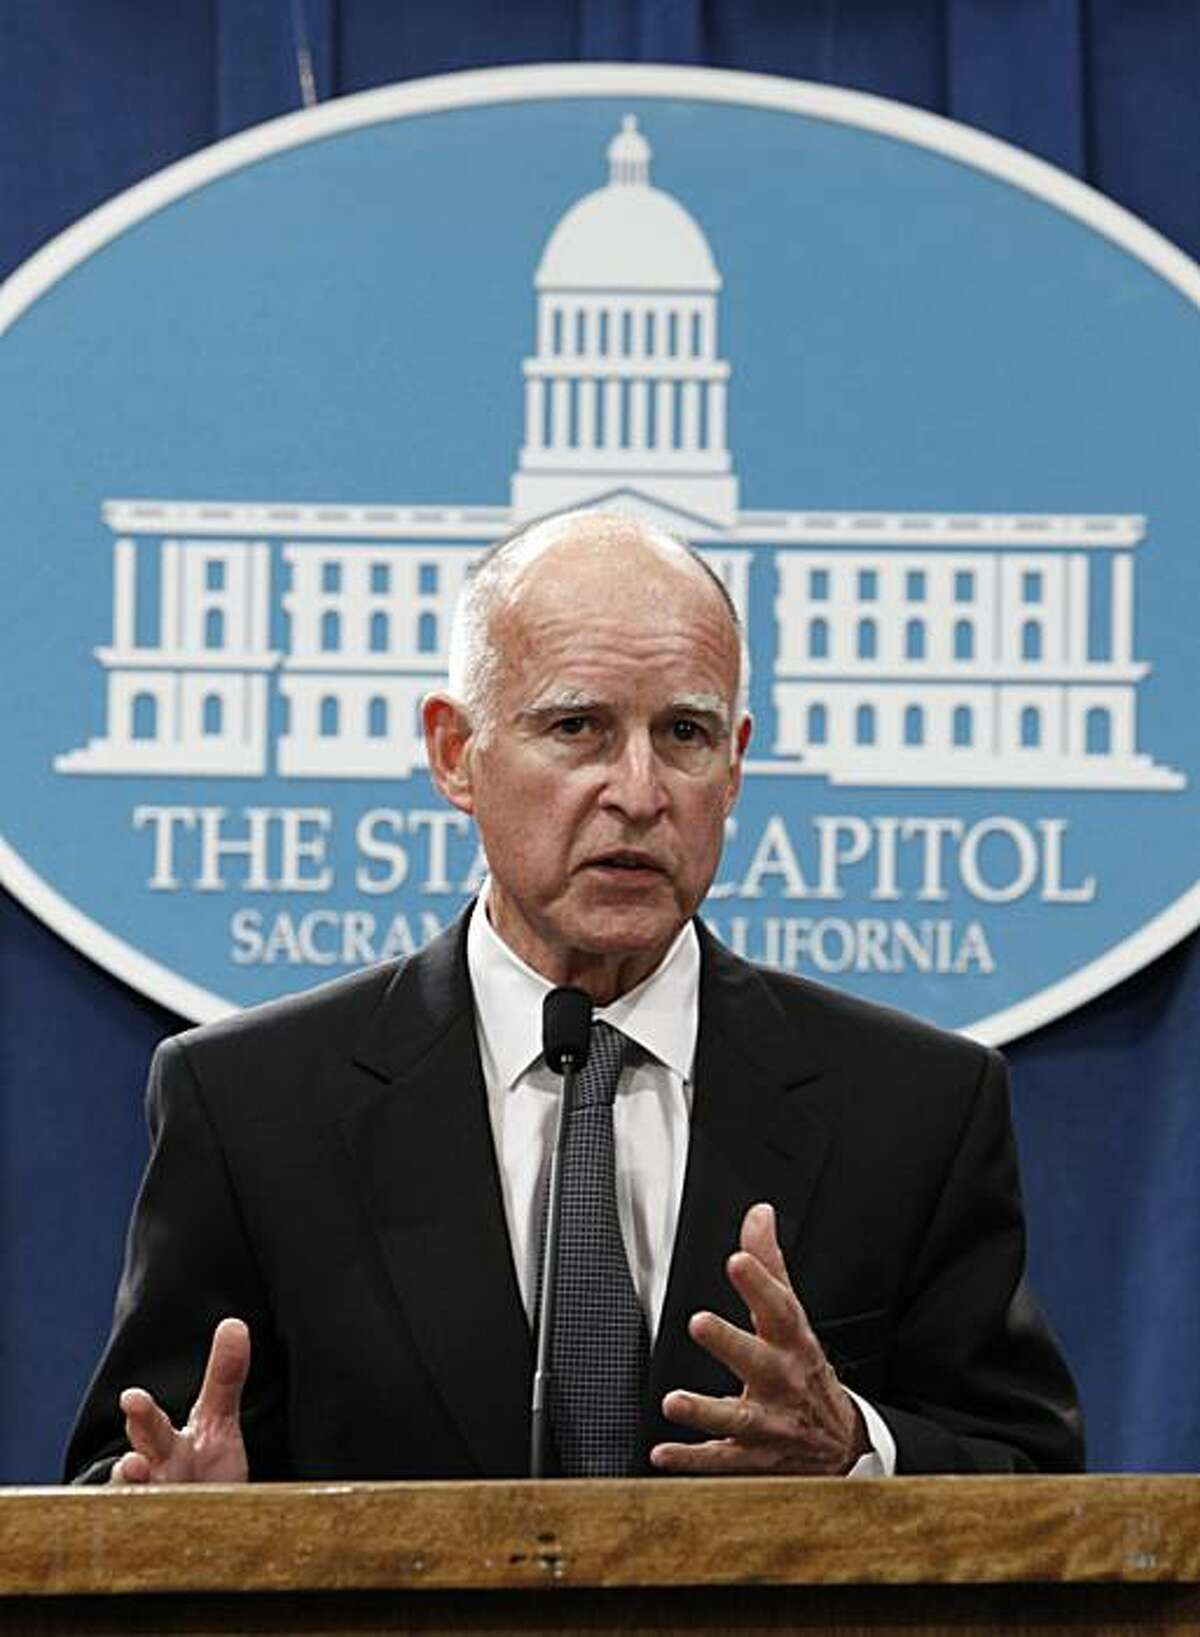 Gov.-elect Jerry Brown answers a question during a news conference held at the Capitol in Sacramento, Calif., Thursday, Nov. 4, 2010. Brown made his first visit to the Capitol after Tuesday's election after meeting with Gov. Arnold Schwarzenegger. He also met with other legislative leaders.